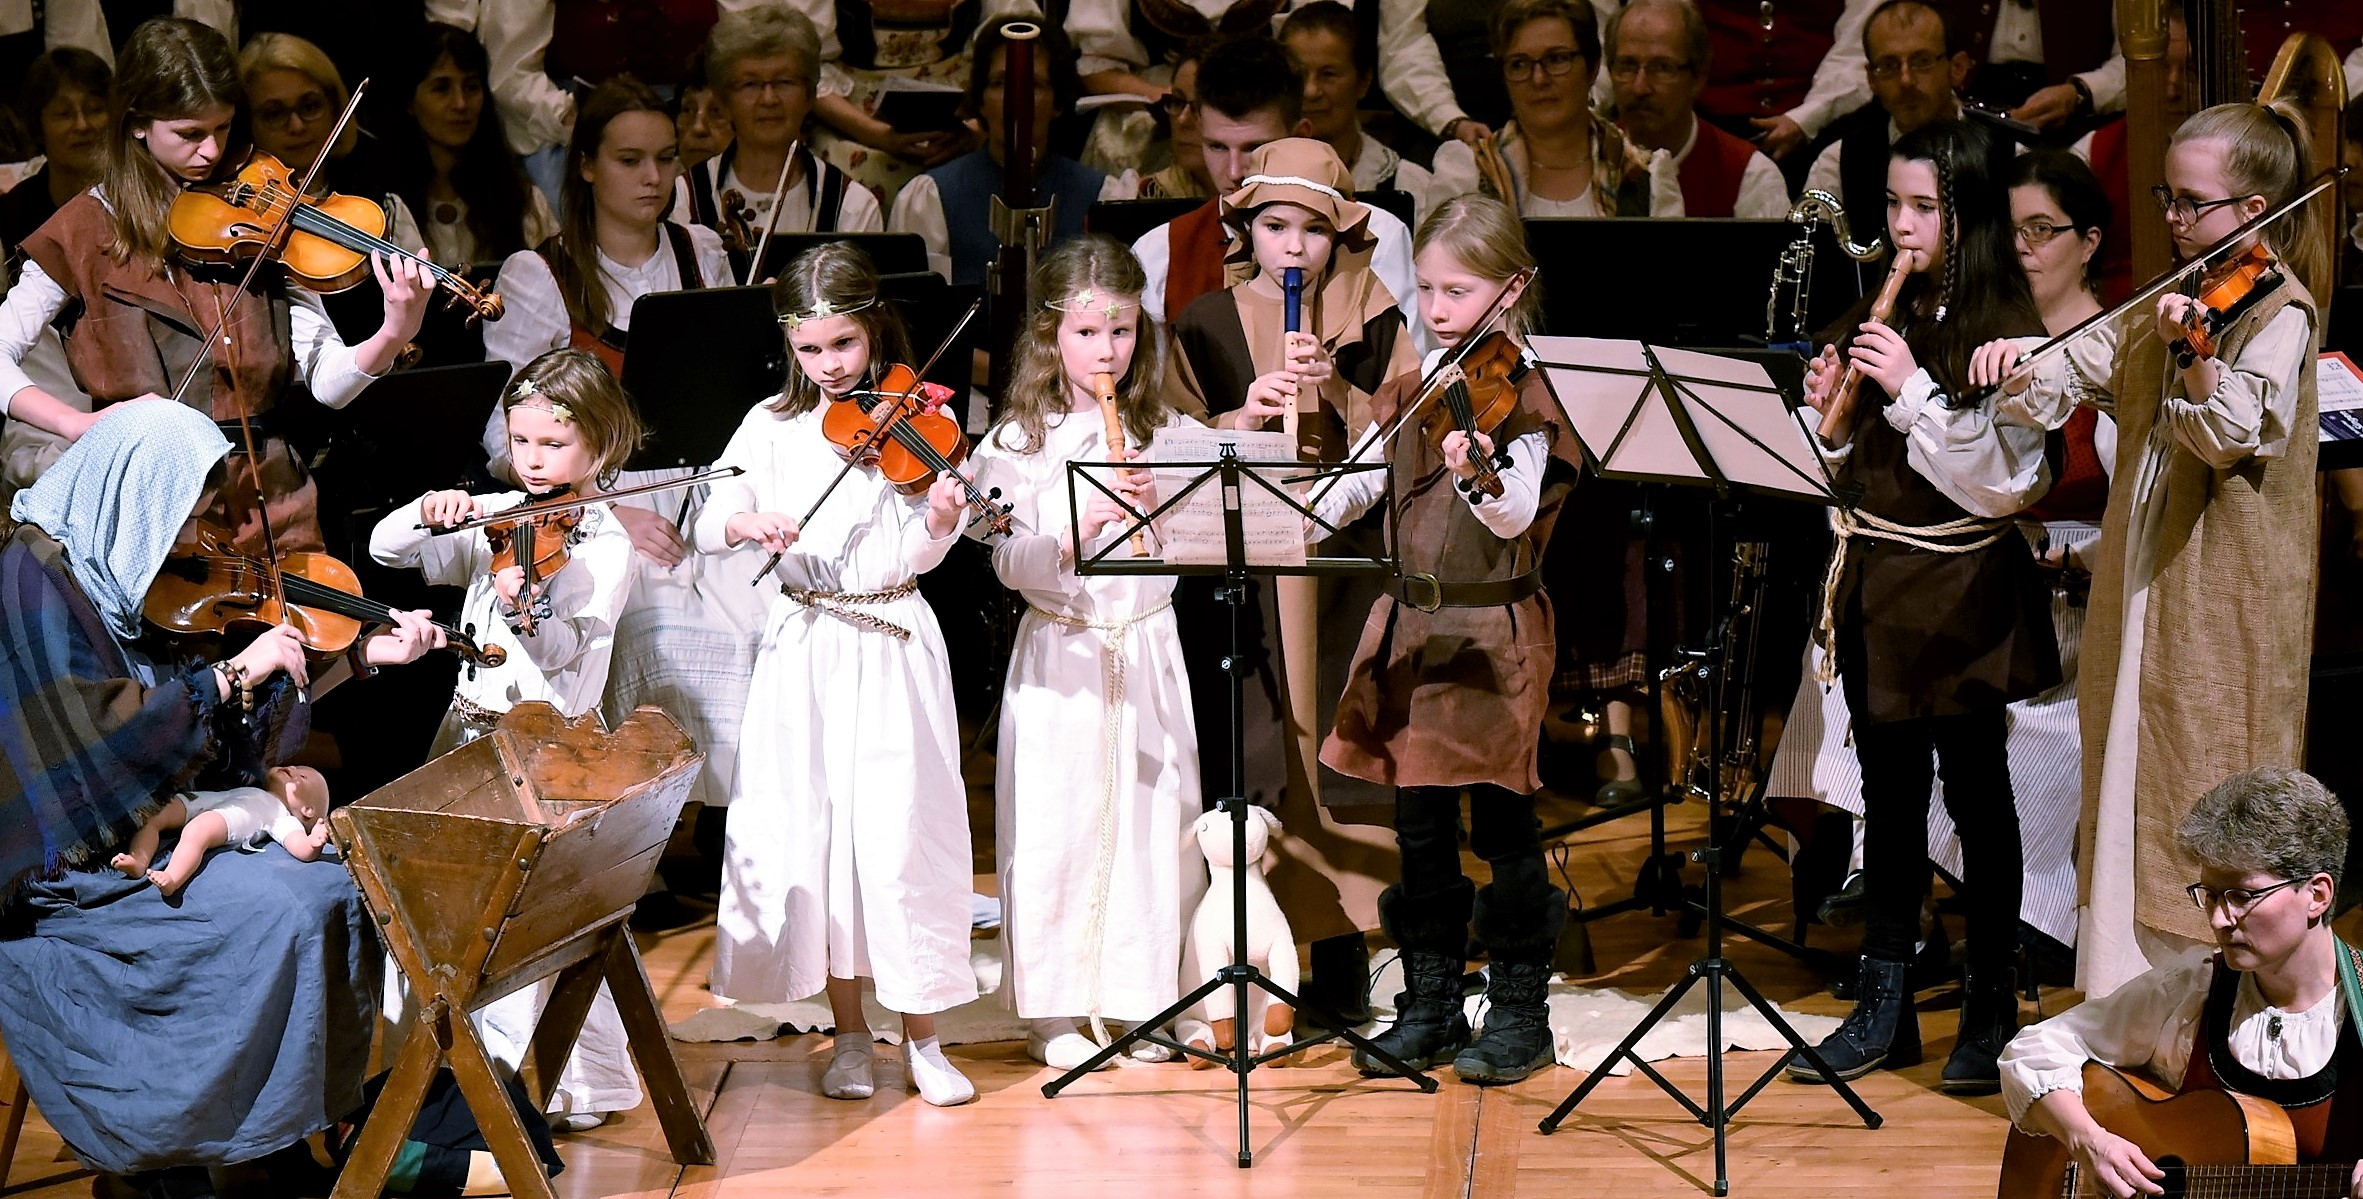 Adventskonzert Stuttgarter Advents Singen - Kindergruppe